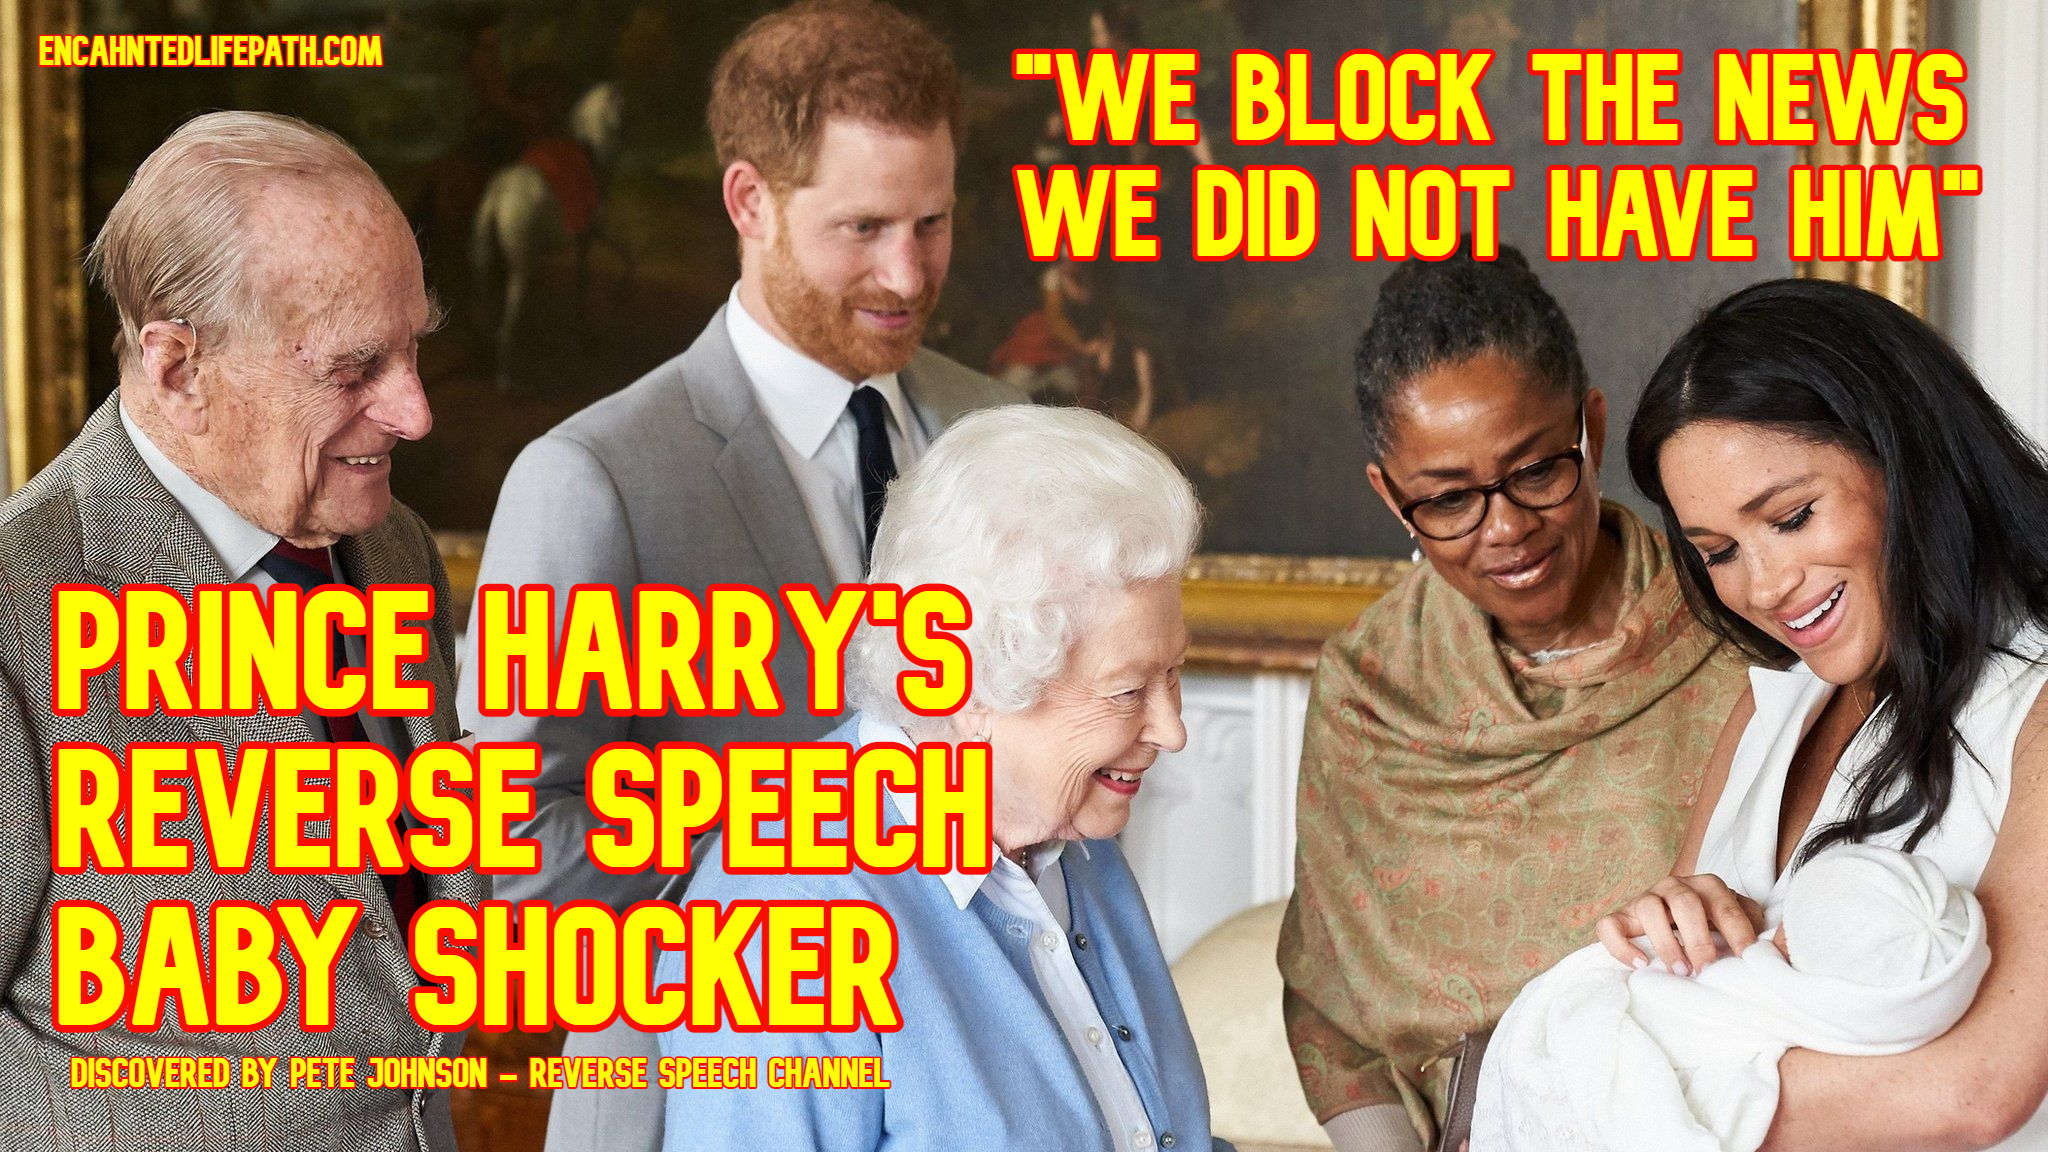 Prince Harry's Reverse Speech - Fake Royal Baby Archie Harrison - See More From Pete Johnson On Enchanted LifePath Website